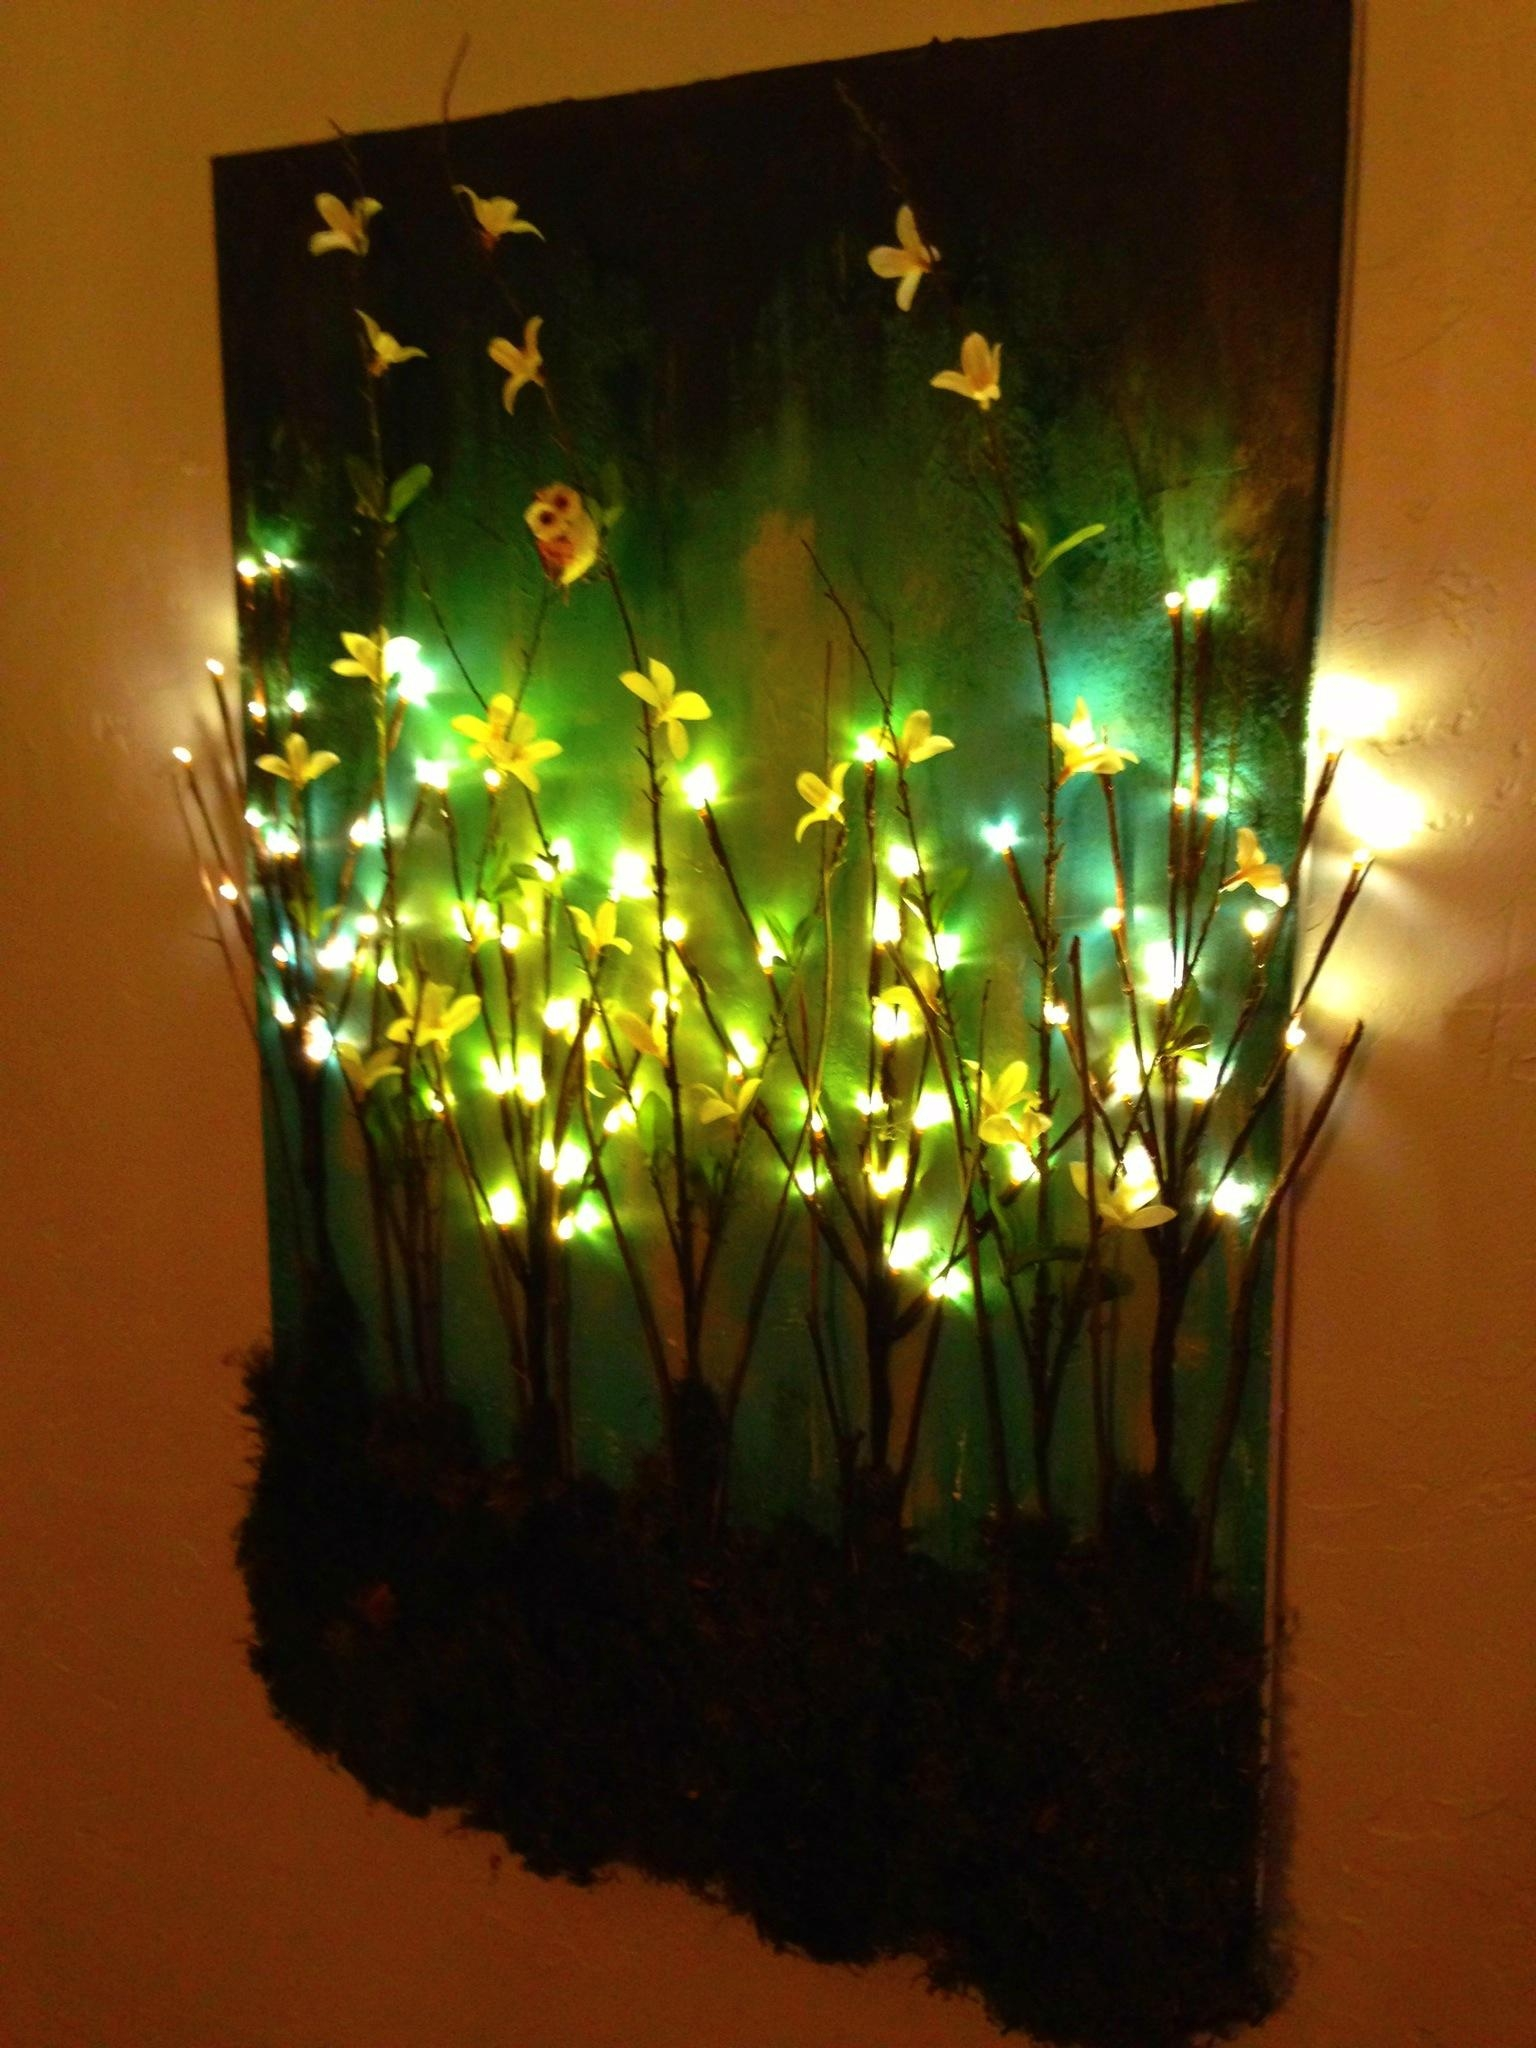 Canvas Light Up Wall Art – 10 Ideal Wall Decorations | Warisan Throughout Wall Art With Lights (Image 6 of 20)